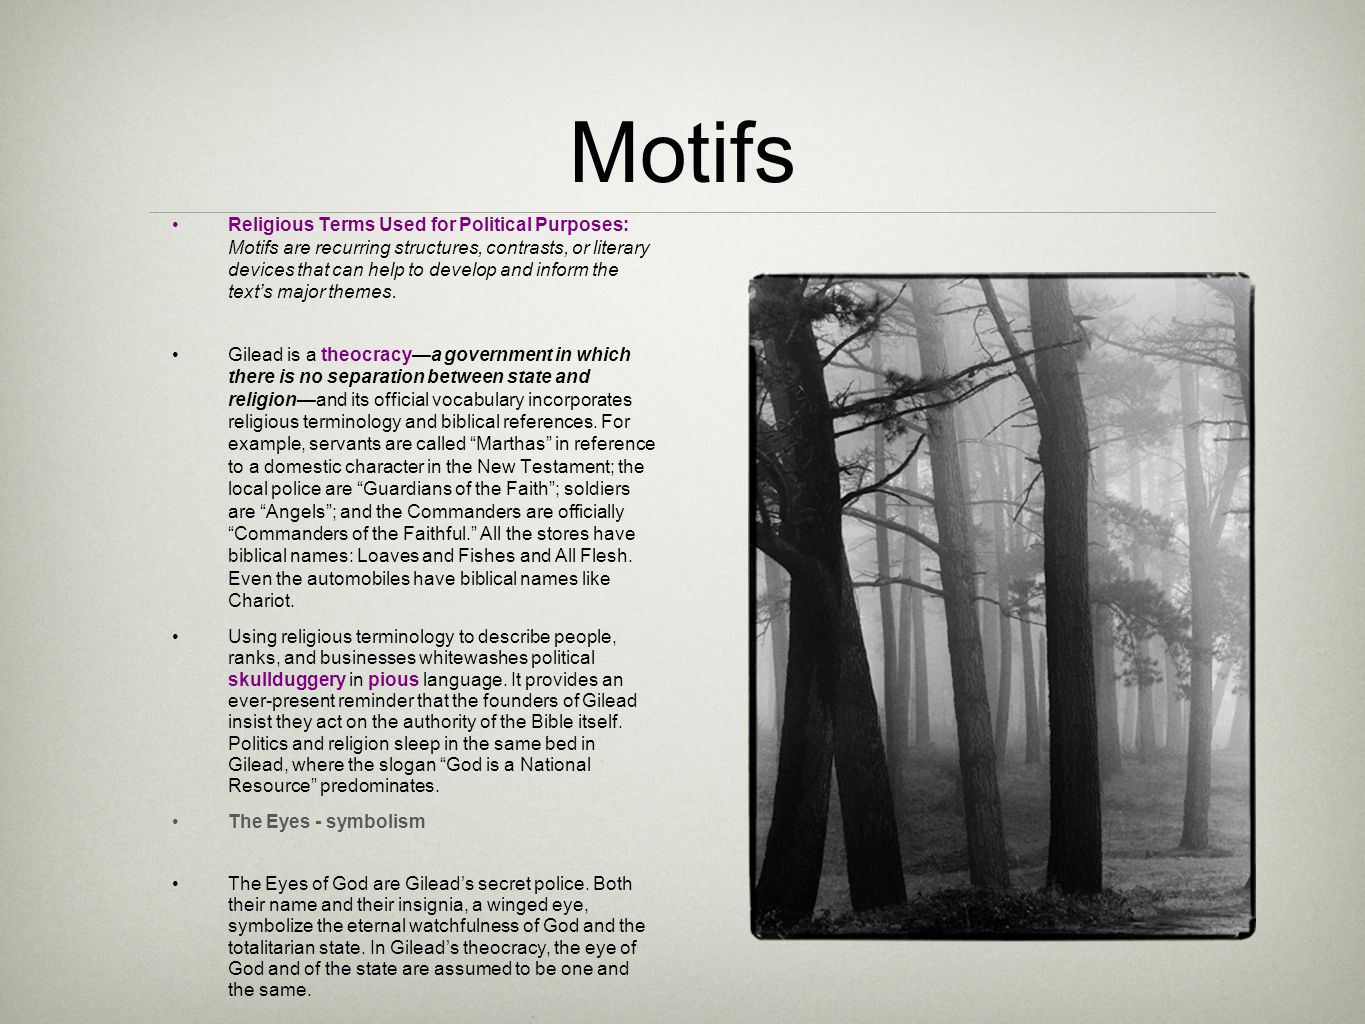 Motifs Religious Terms Used for Political Purposes: Motifs are recurring structures, contrasts, or literary devices that can help to develop and inform the text's major themes.